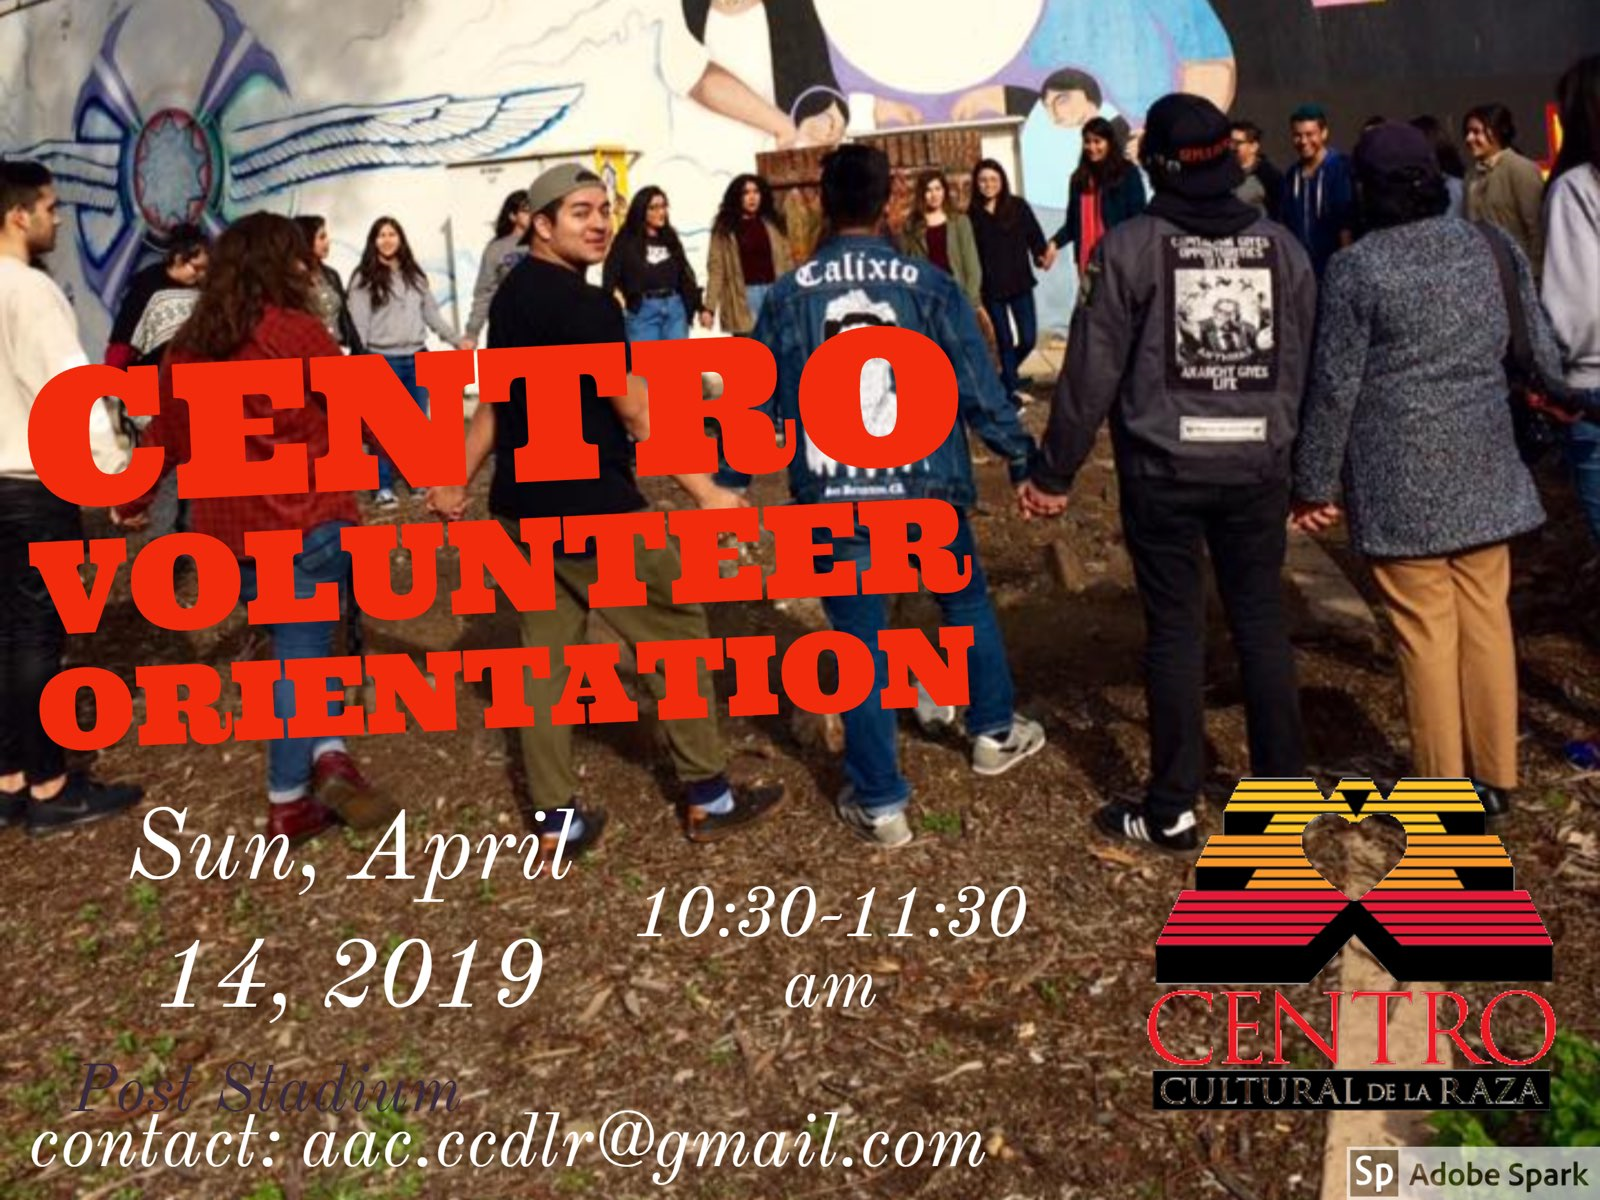 Volunteer Orientation Event organized by the AAC, will be held at the Centro on Sunday April 14, 2019 from 10:30 am to 11:30 am to familiarize current volunteers of the history and tradition of the Centro.  Please contact us at  aac.ccdlr@gmail.com  for more information on attending the event or becoming a future volunteer at the Centro Cultural De La Raza.